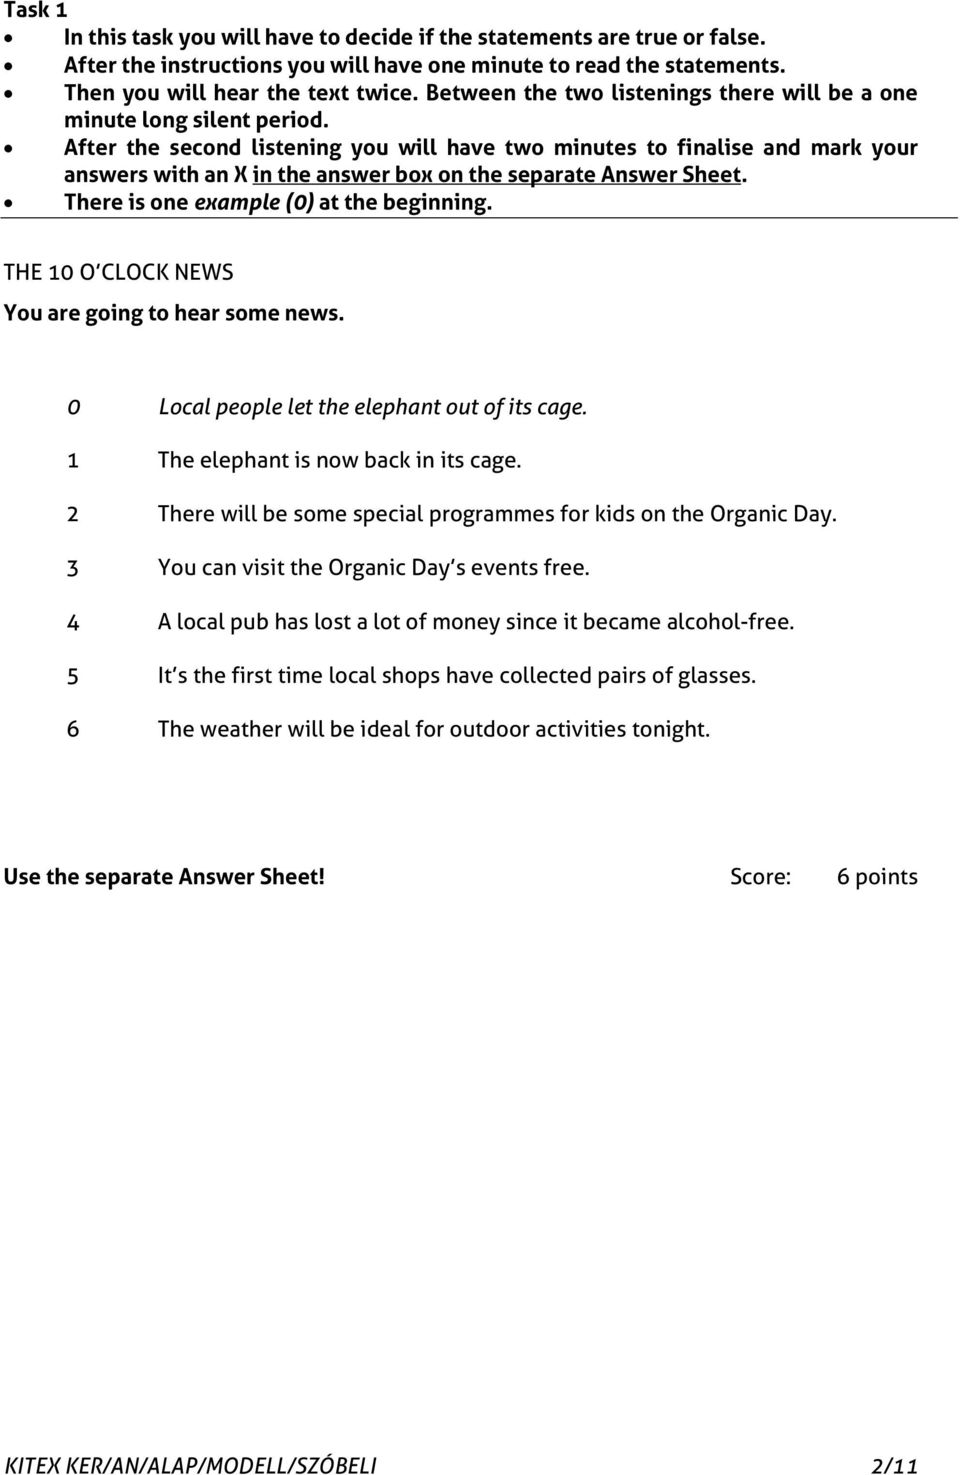 After the second listening you will have two minutes to finalise and mark your answers with an X in the answer box on the separate Answer Sheet. There is one example (0) at the beginning.